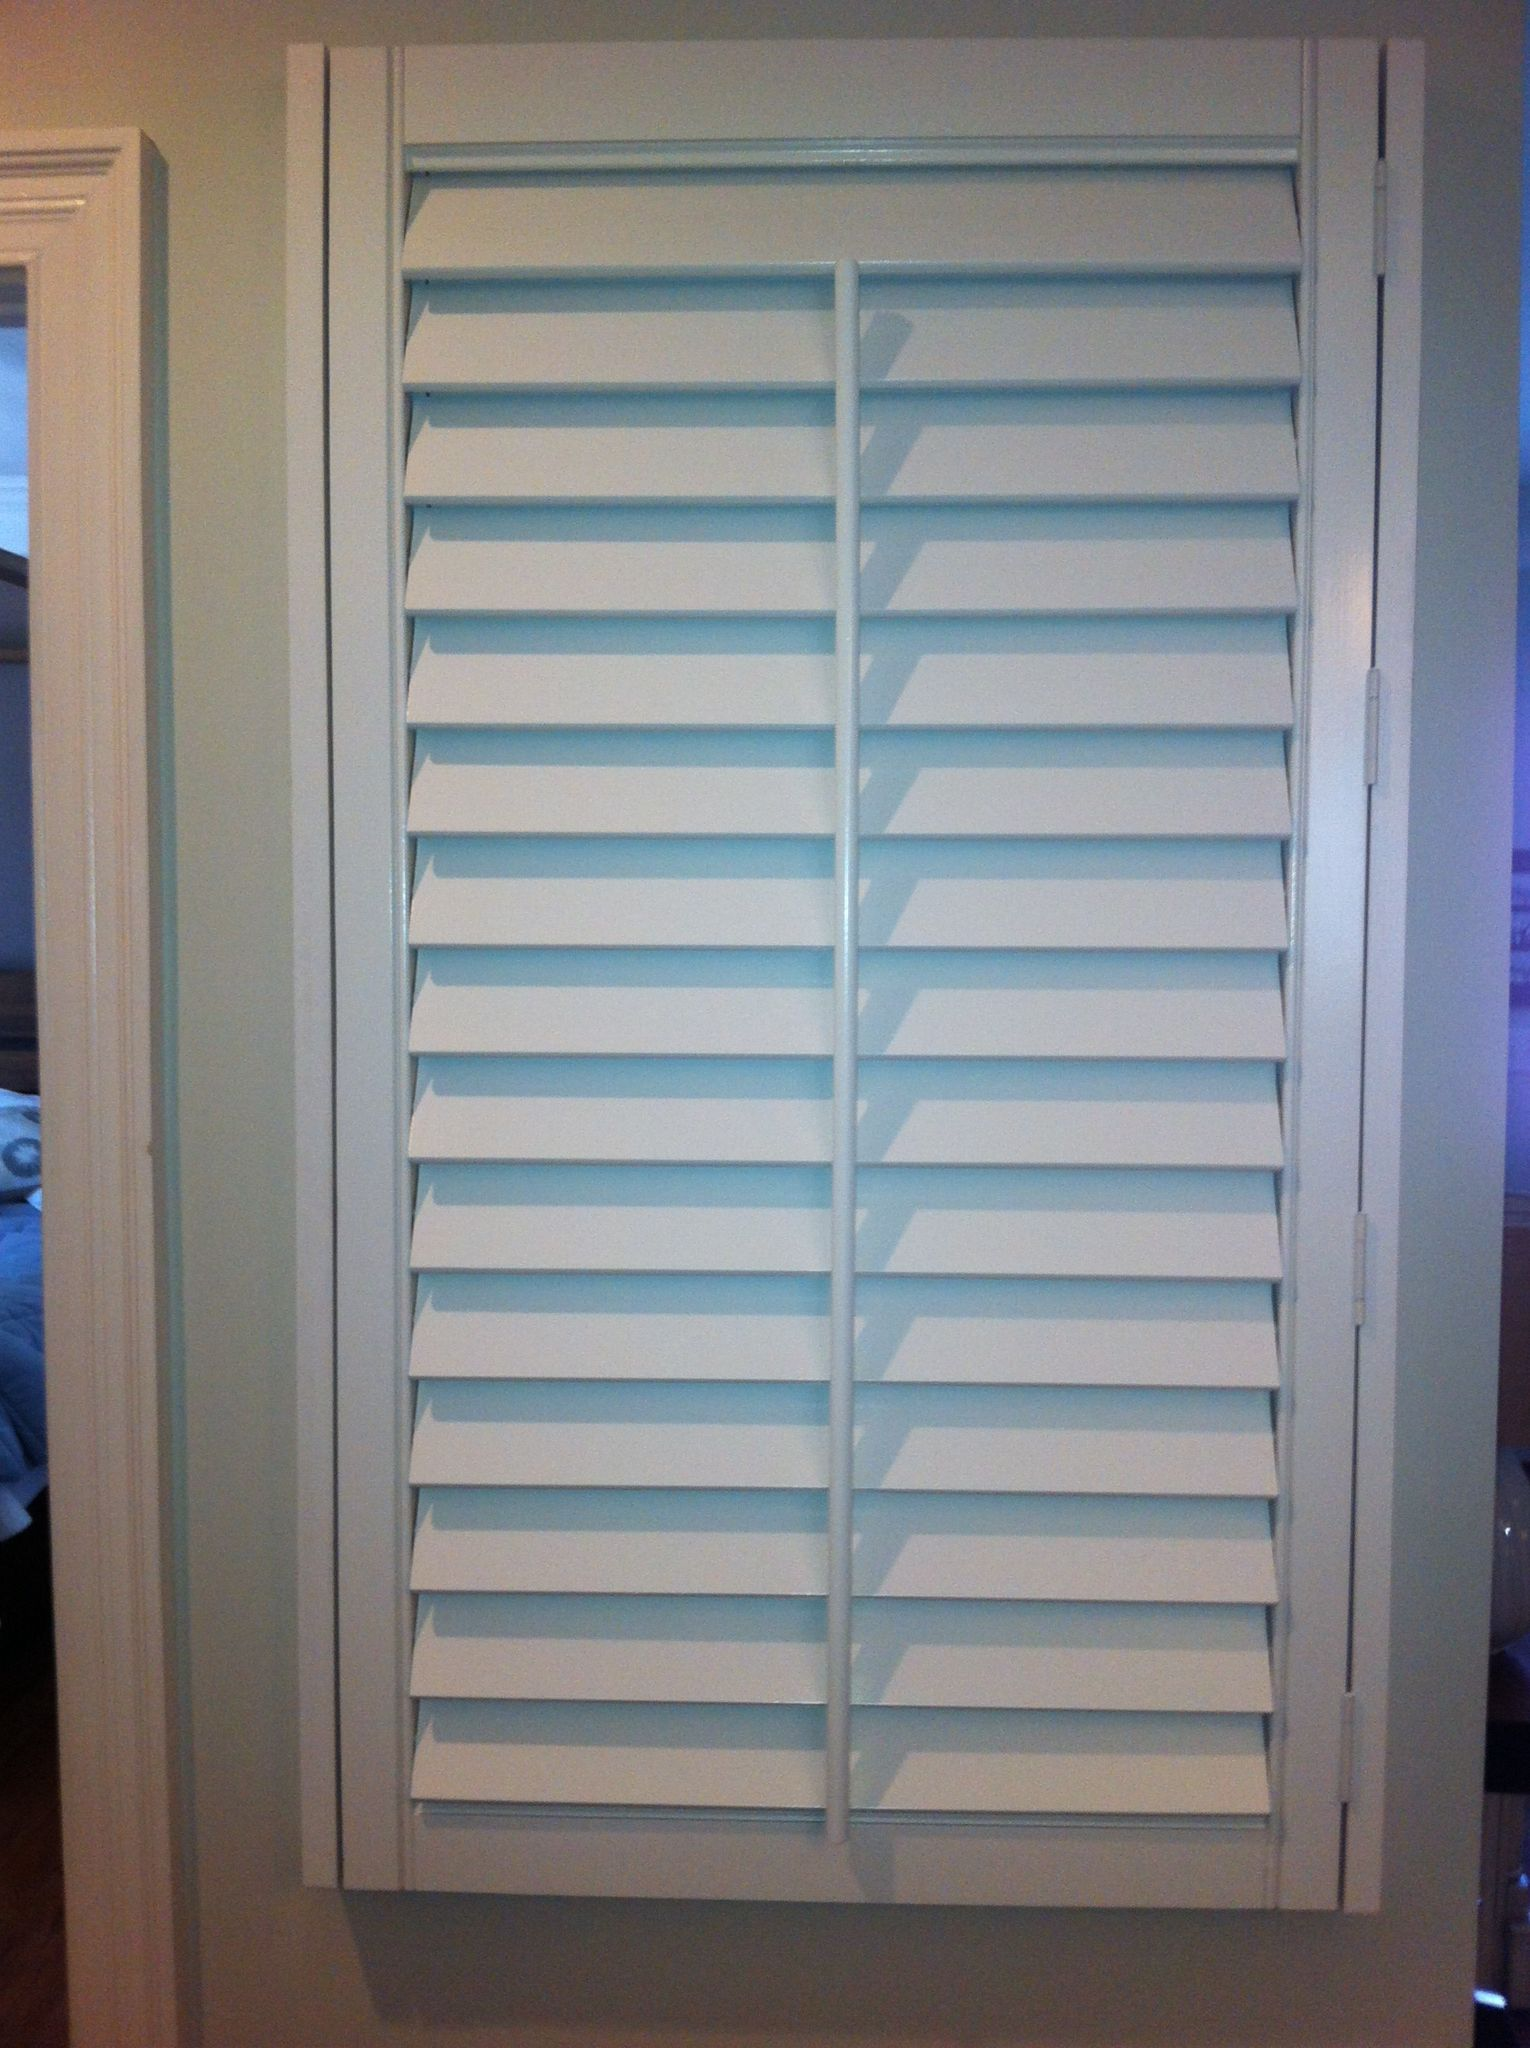 Plantation Shutter Covers The Ugly Air Return Vent In My